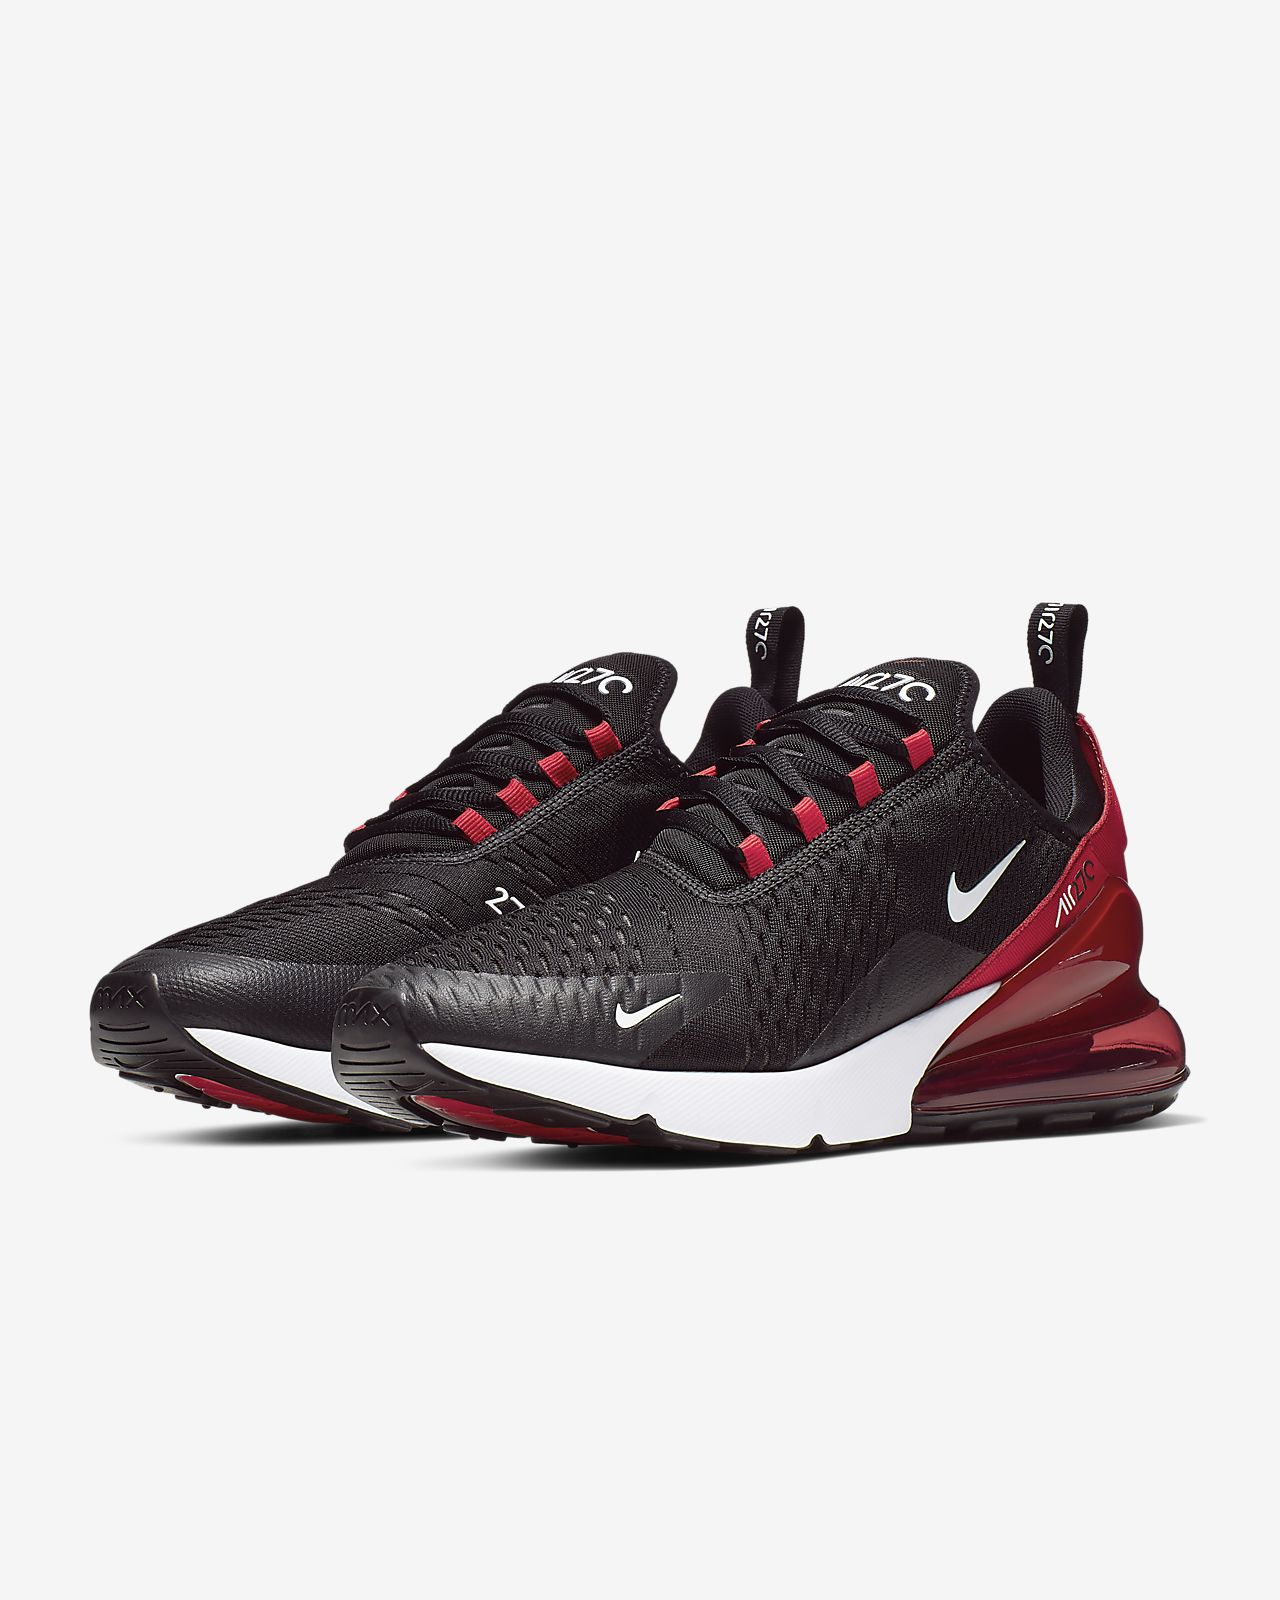 9f32a1c109bc51 Nike Air Max 270 Men s Shoe. Nike.com GB